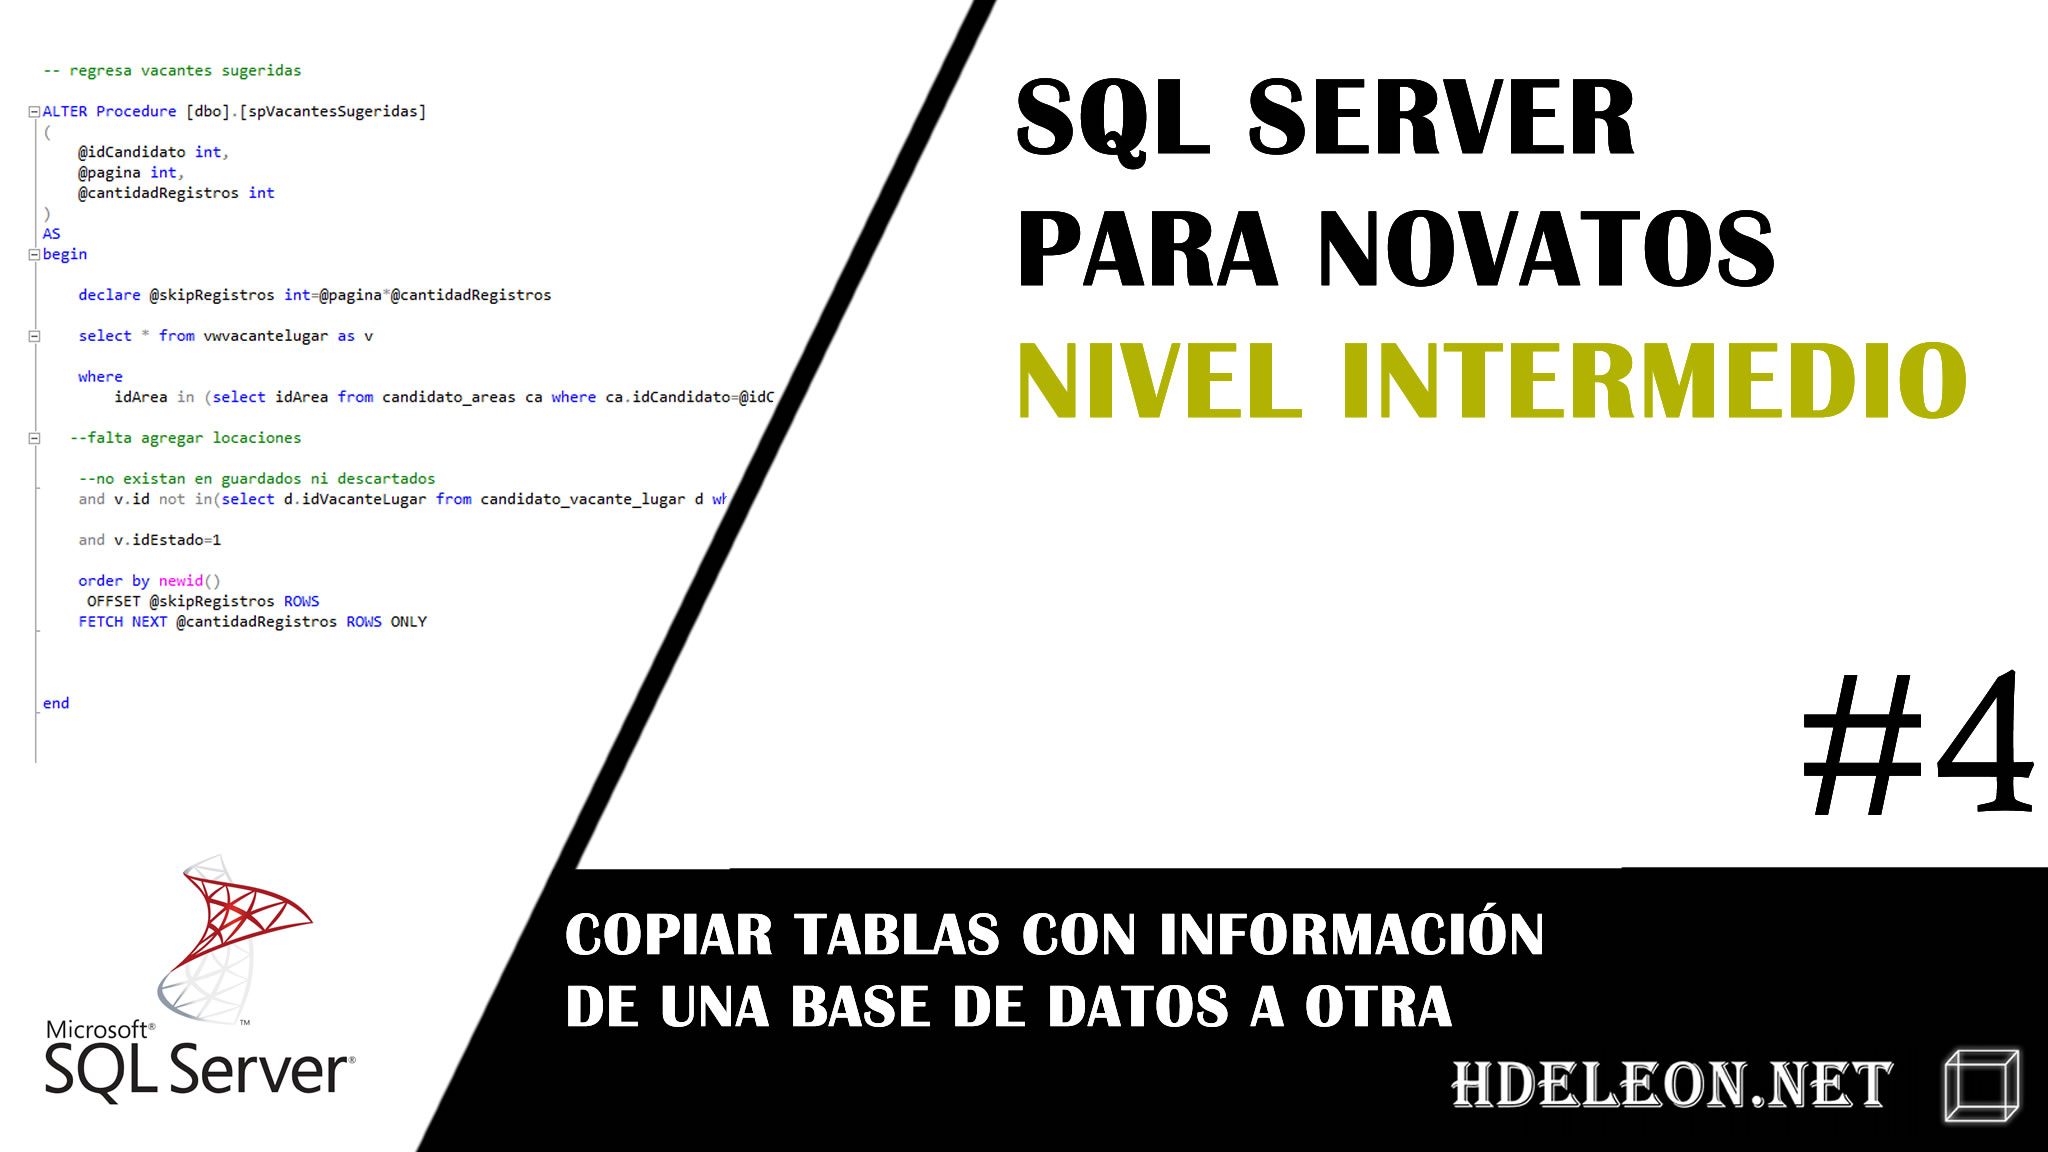 Sql Server nivel Intermedio, Copiar tablas con información entre base de datos, #4